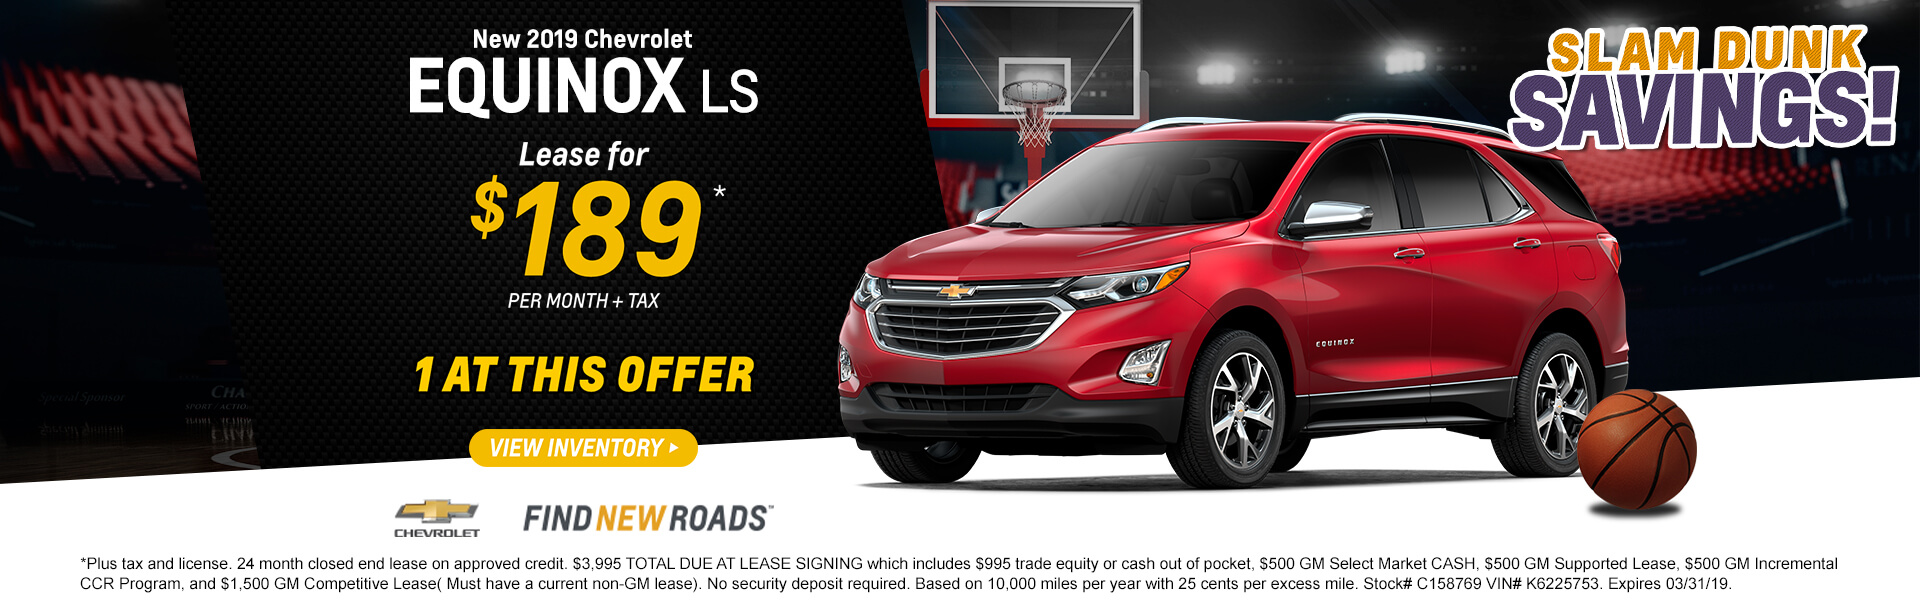 2019 Equinox LS Lease $189 per month $3,995 TOTAL DUE AT LEASE SIGNING which includes $995 trade equity or cash out of pocket, $500 GM Select Market CASH, $500 GM Supported Lease, $500 GM Incremental CCR Program, and $1,500 GM Competitive Lease( Must have a current non-GM lease). No security deposit required. Based on 10,000 miles per year with 25 cents per excess mile. Stock# C158769 VIN# K6225753. Expires 03/31/19